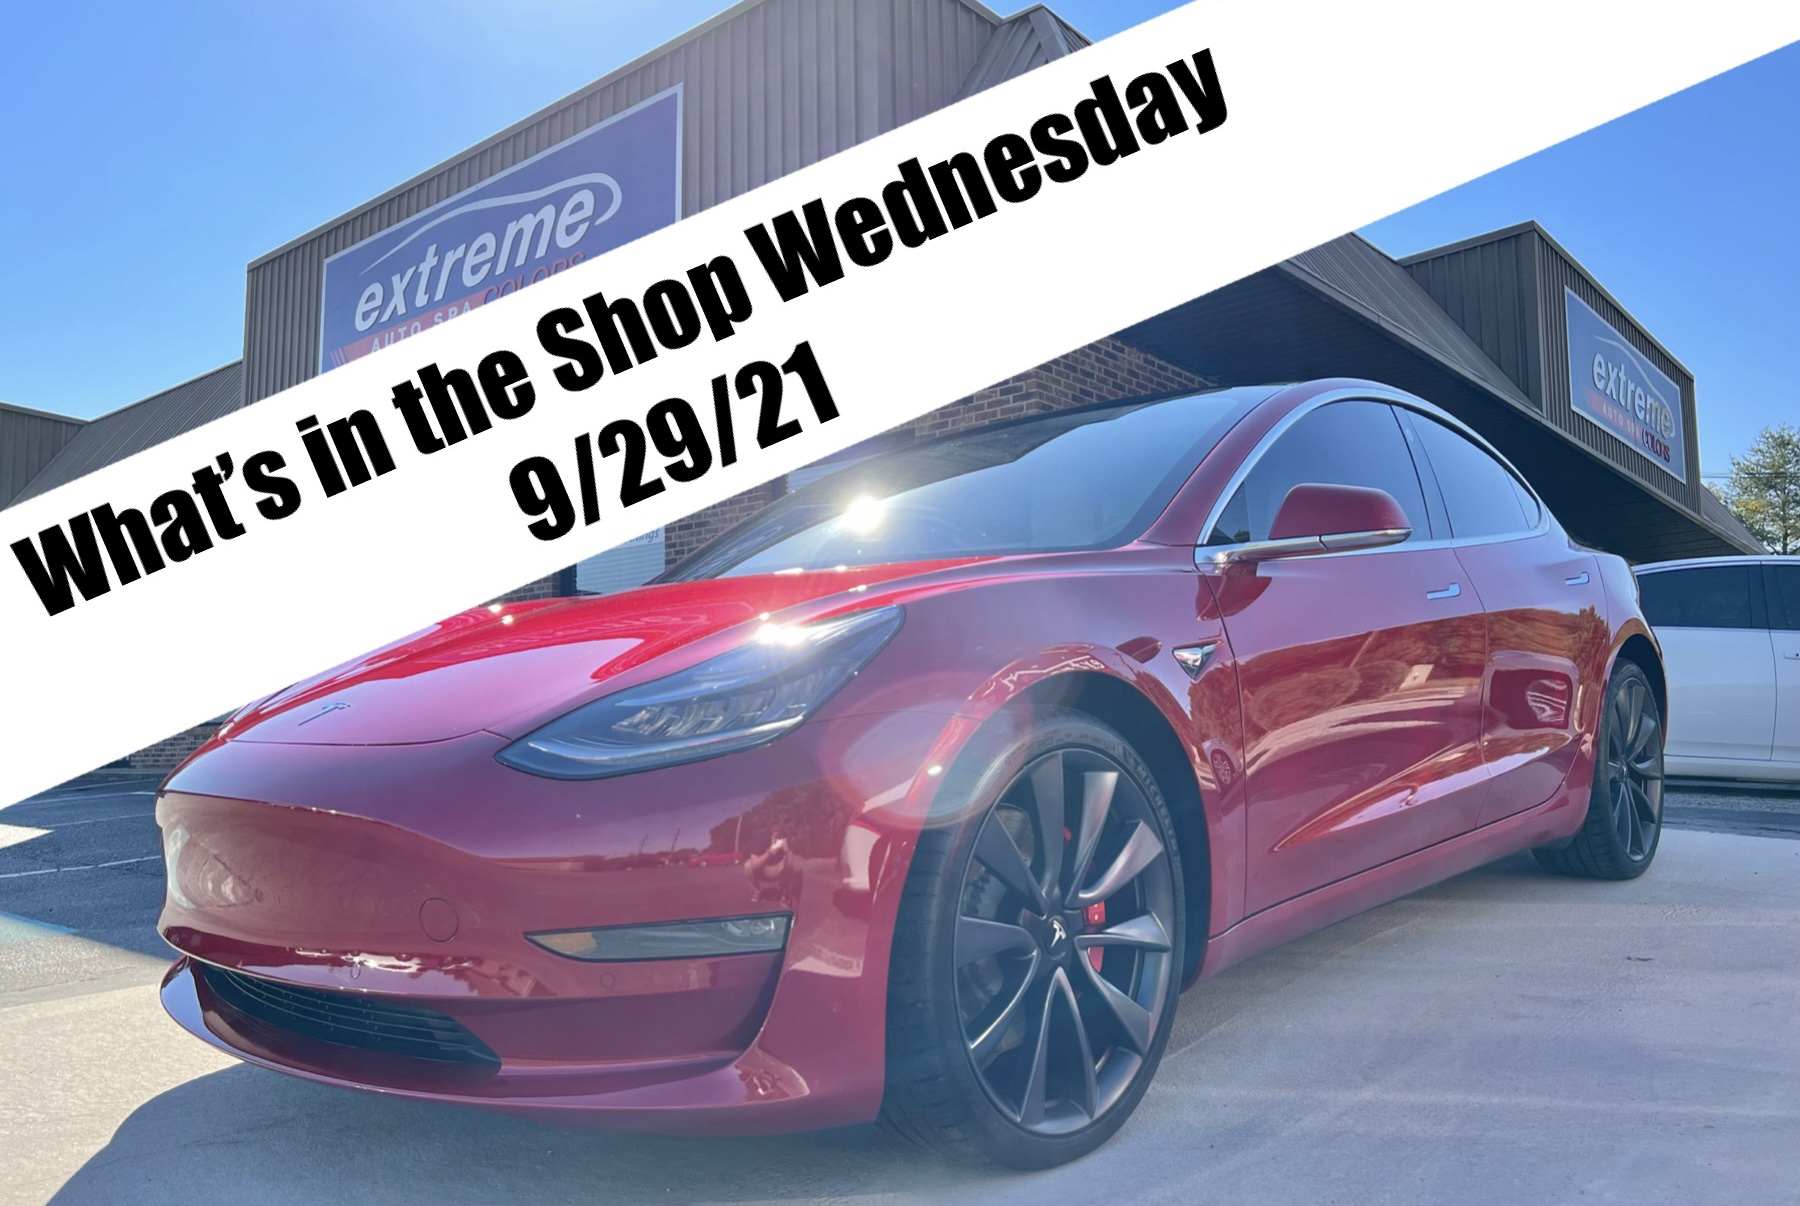 What's in the Shop Wednesday 9/29/21 Featuring Service Dogs for Veterans